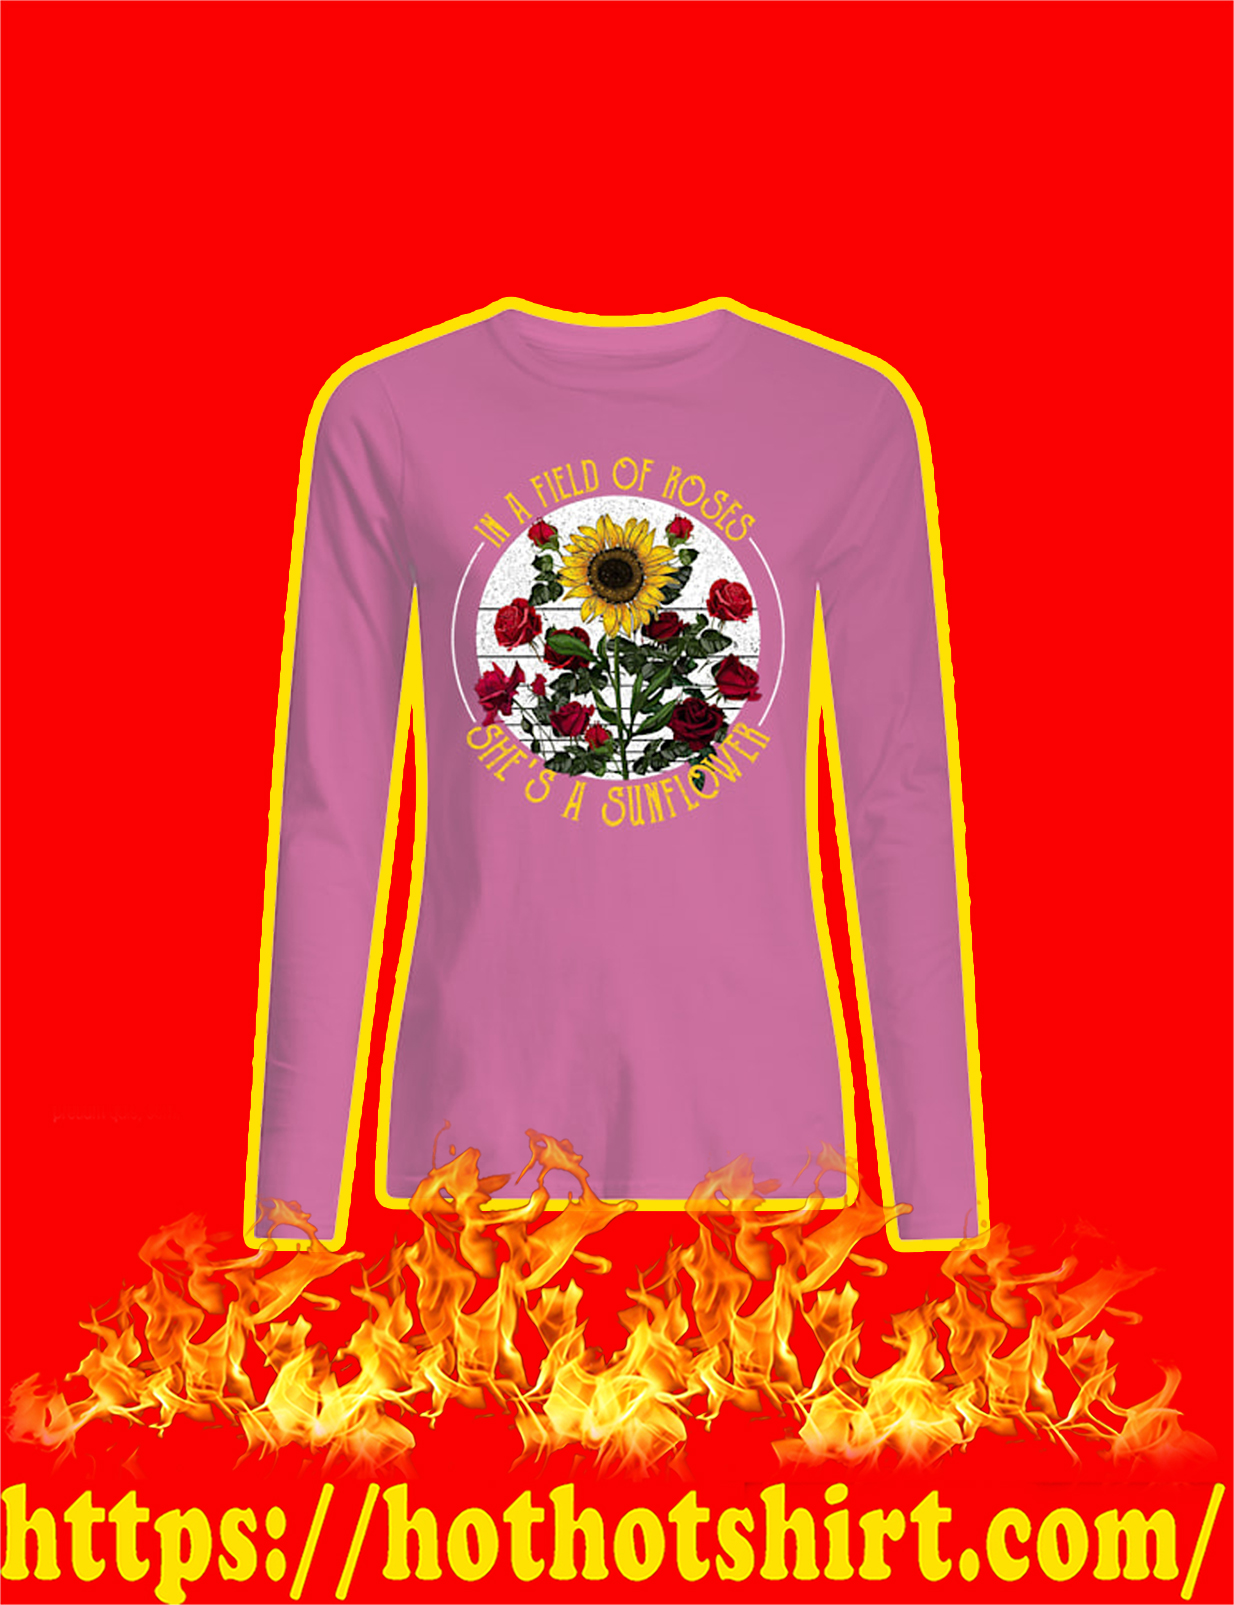 In A Field Of Roses She's A Sunflower Women Long Sleeved Shirt